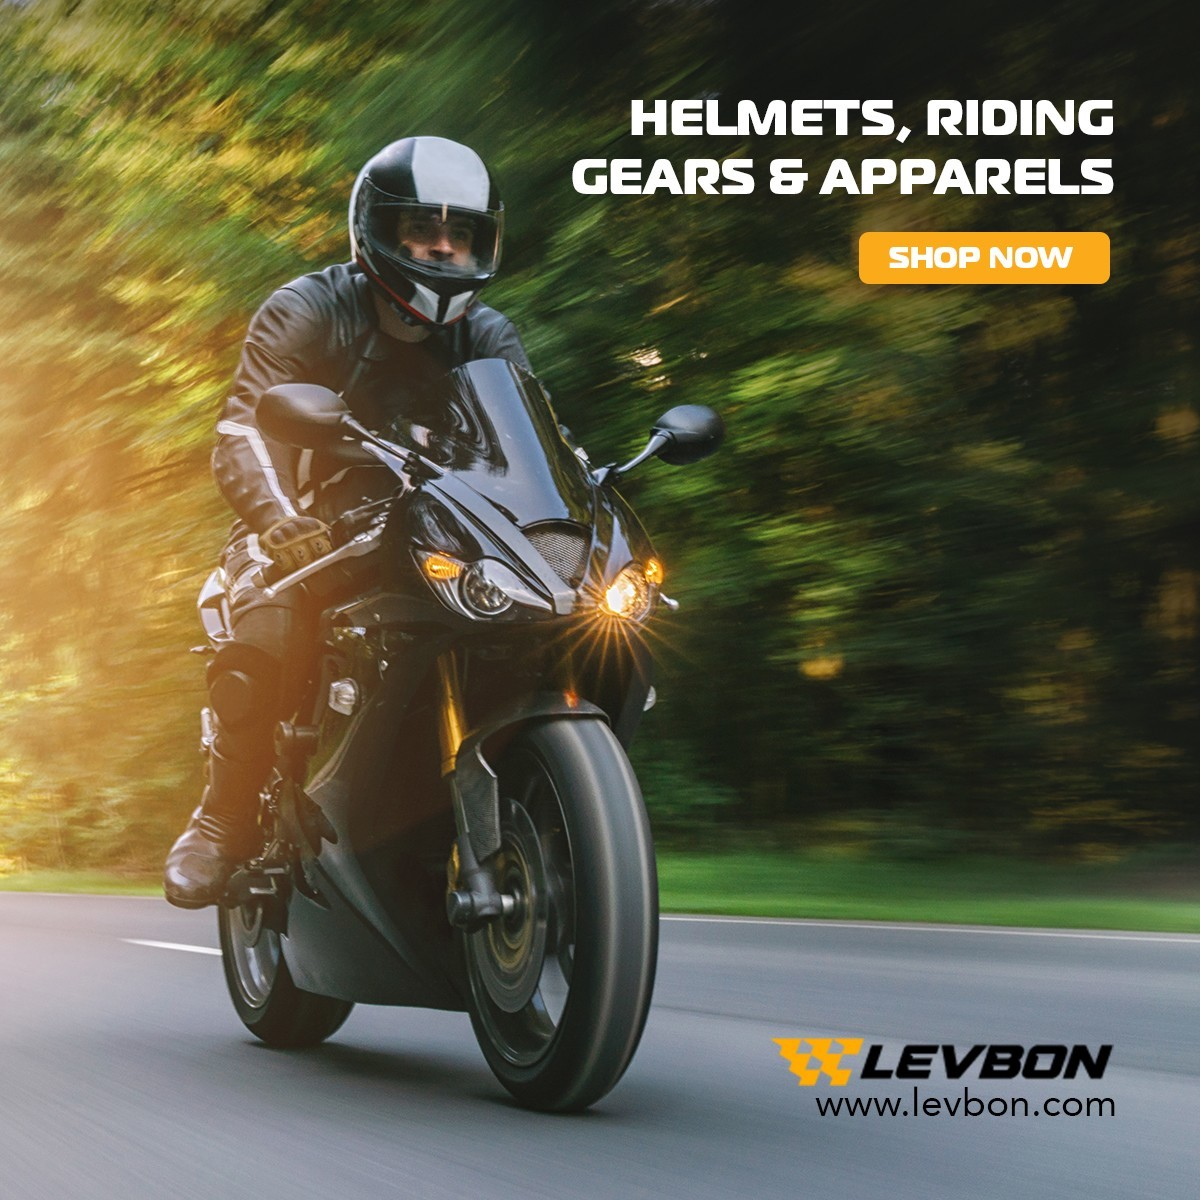 Motorcycle Gear & Accessories - LevBon